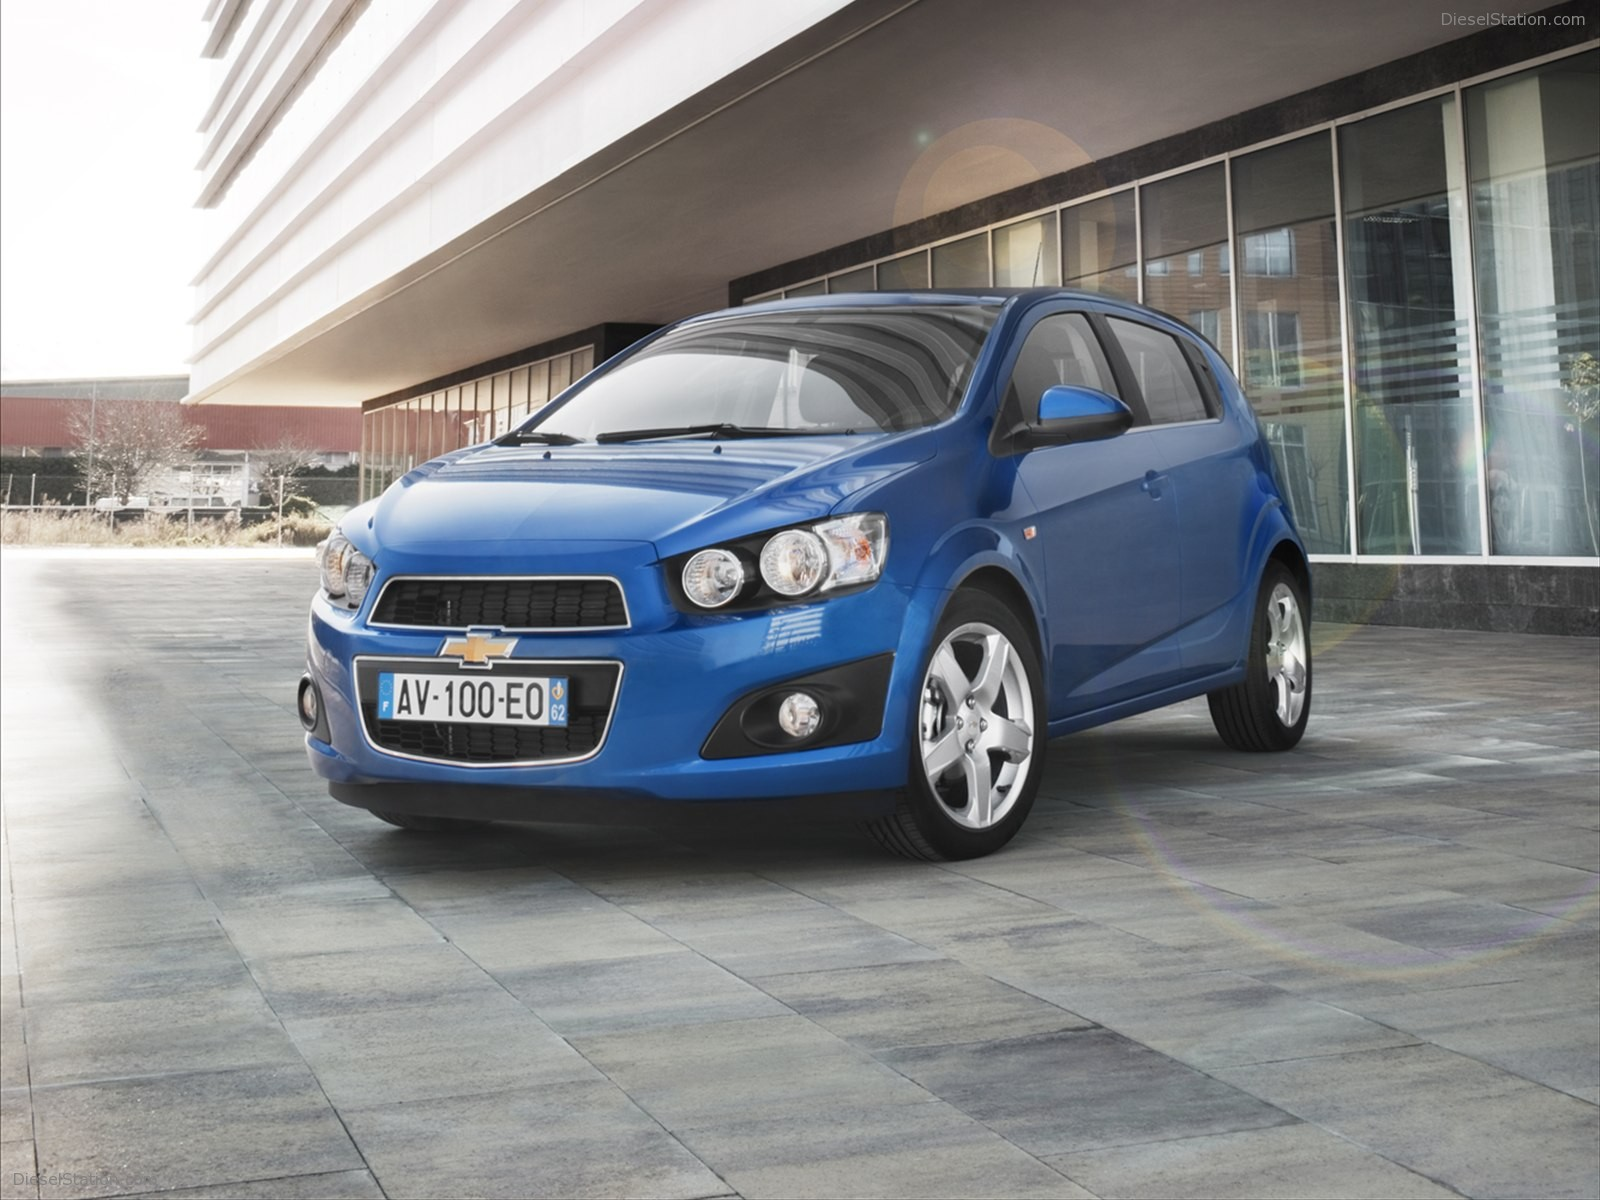 chevrolet aveo (ii) hatchback 2011 pictures #12